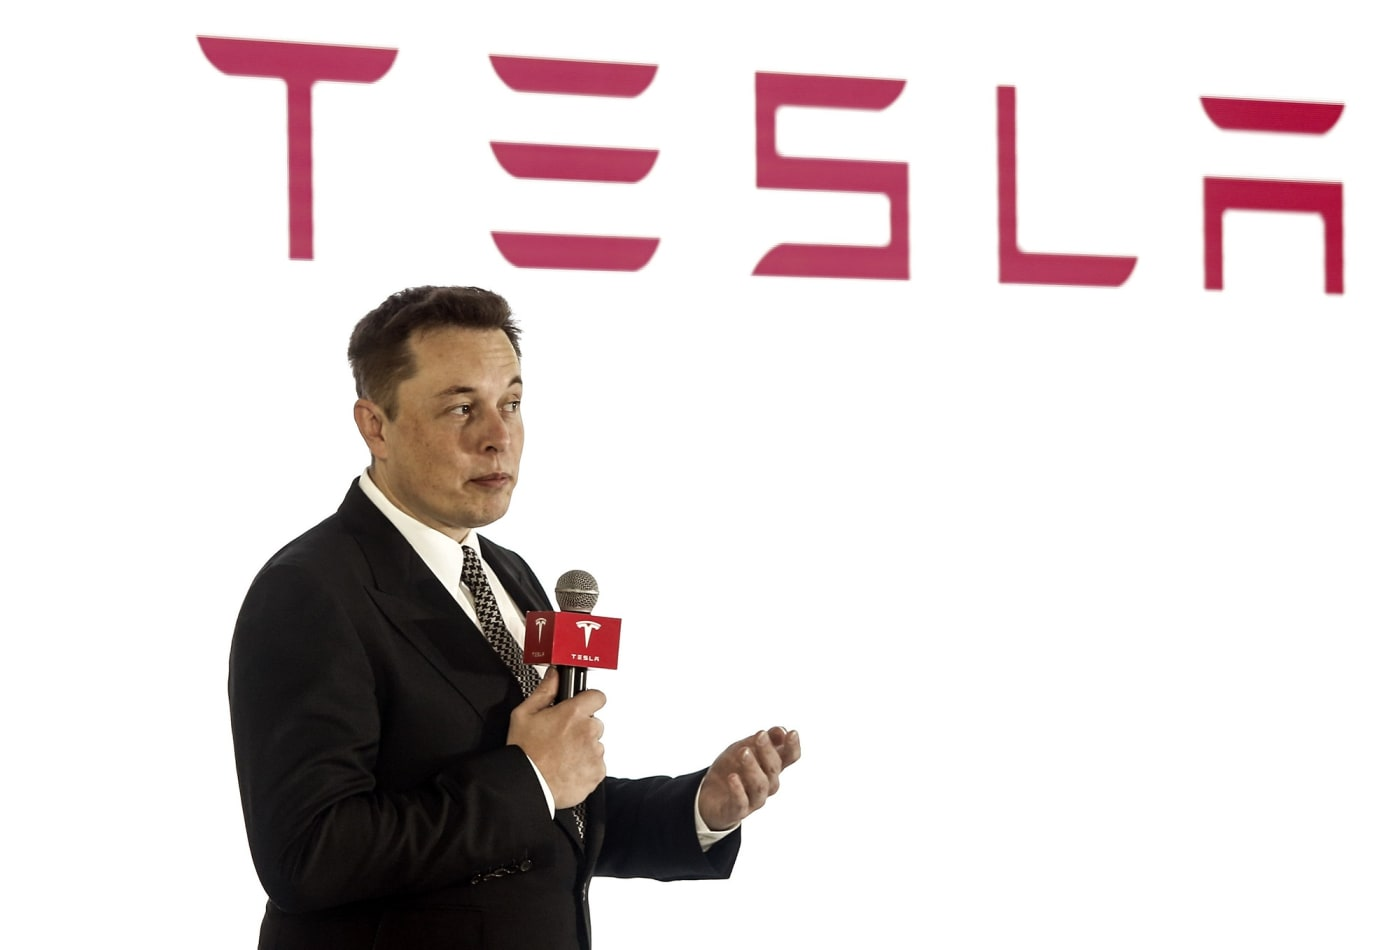 BEIJING, CHINA - OCTOBER 23: (CHINA OUT) Elon Musk, Chairman, CEO and Product Architect of Tesla Motors, addresses a press conference to declare that the Tesla Motors releases v7.0 System in China on a limited basis for its Model S, which will enable self-driving features such as Autosteer for a select group of beta testers on October 23, 2015 in Beijing, China. (Photo by Visual China Group via Getty Images/Visual China Group via Getty Images) VISUAL CHINA GROUP VIA GETTY IMAGES